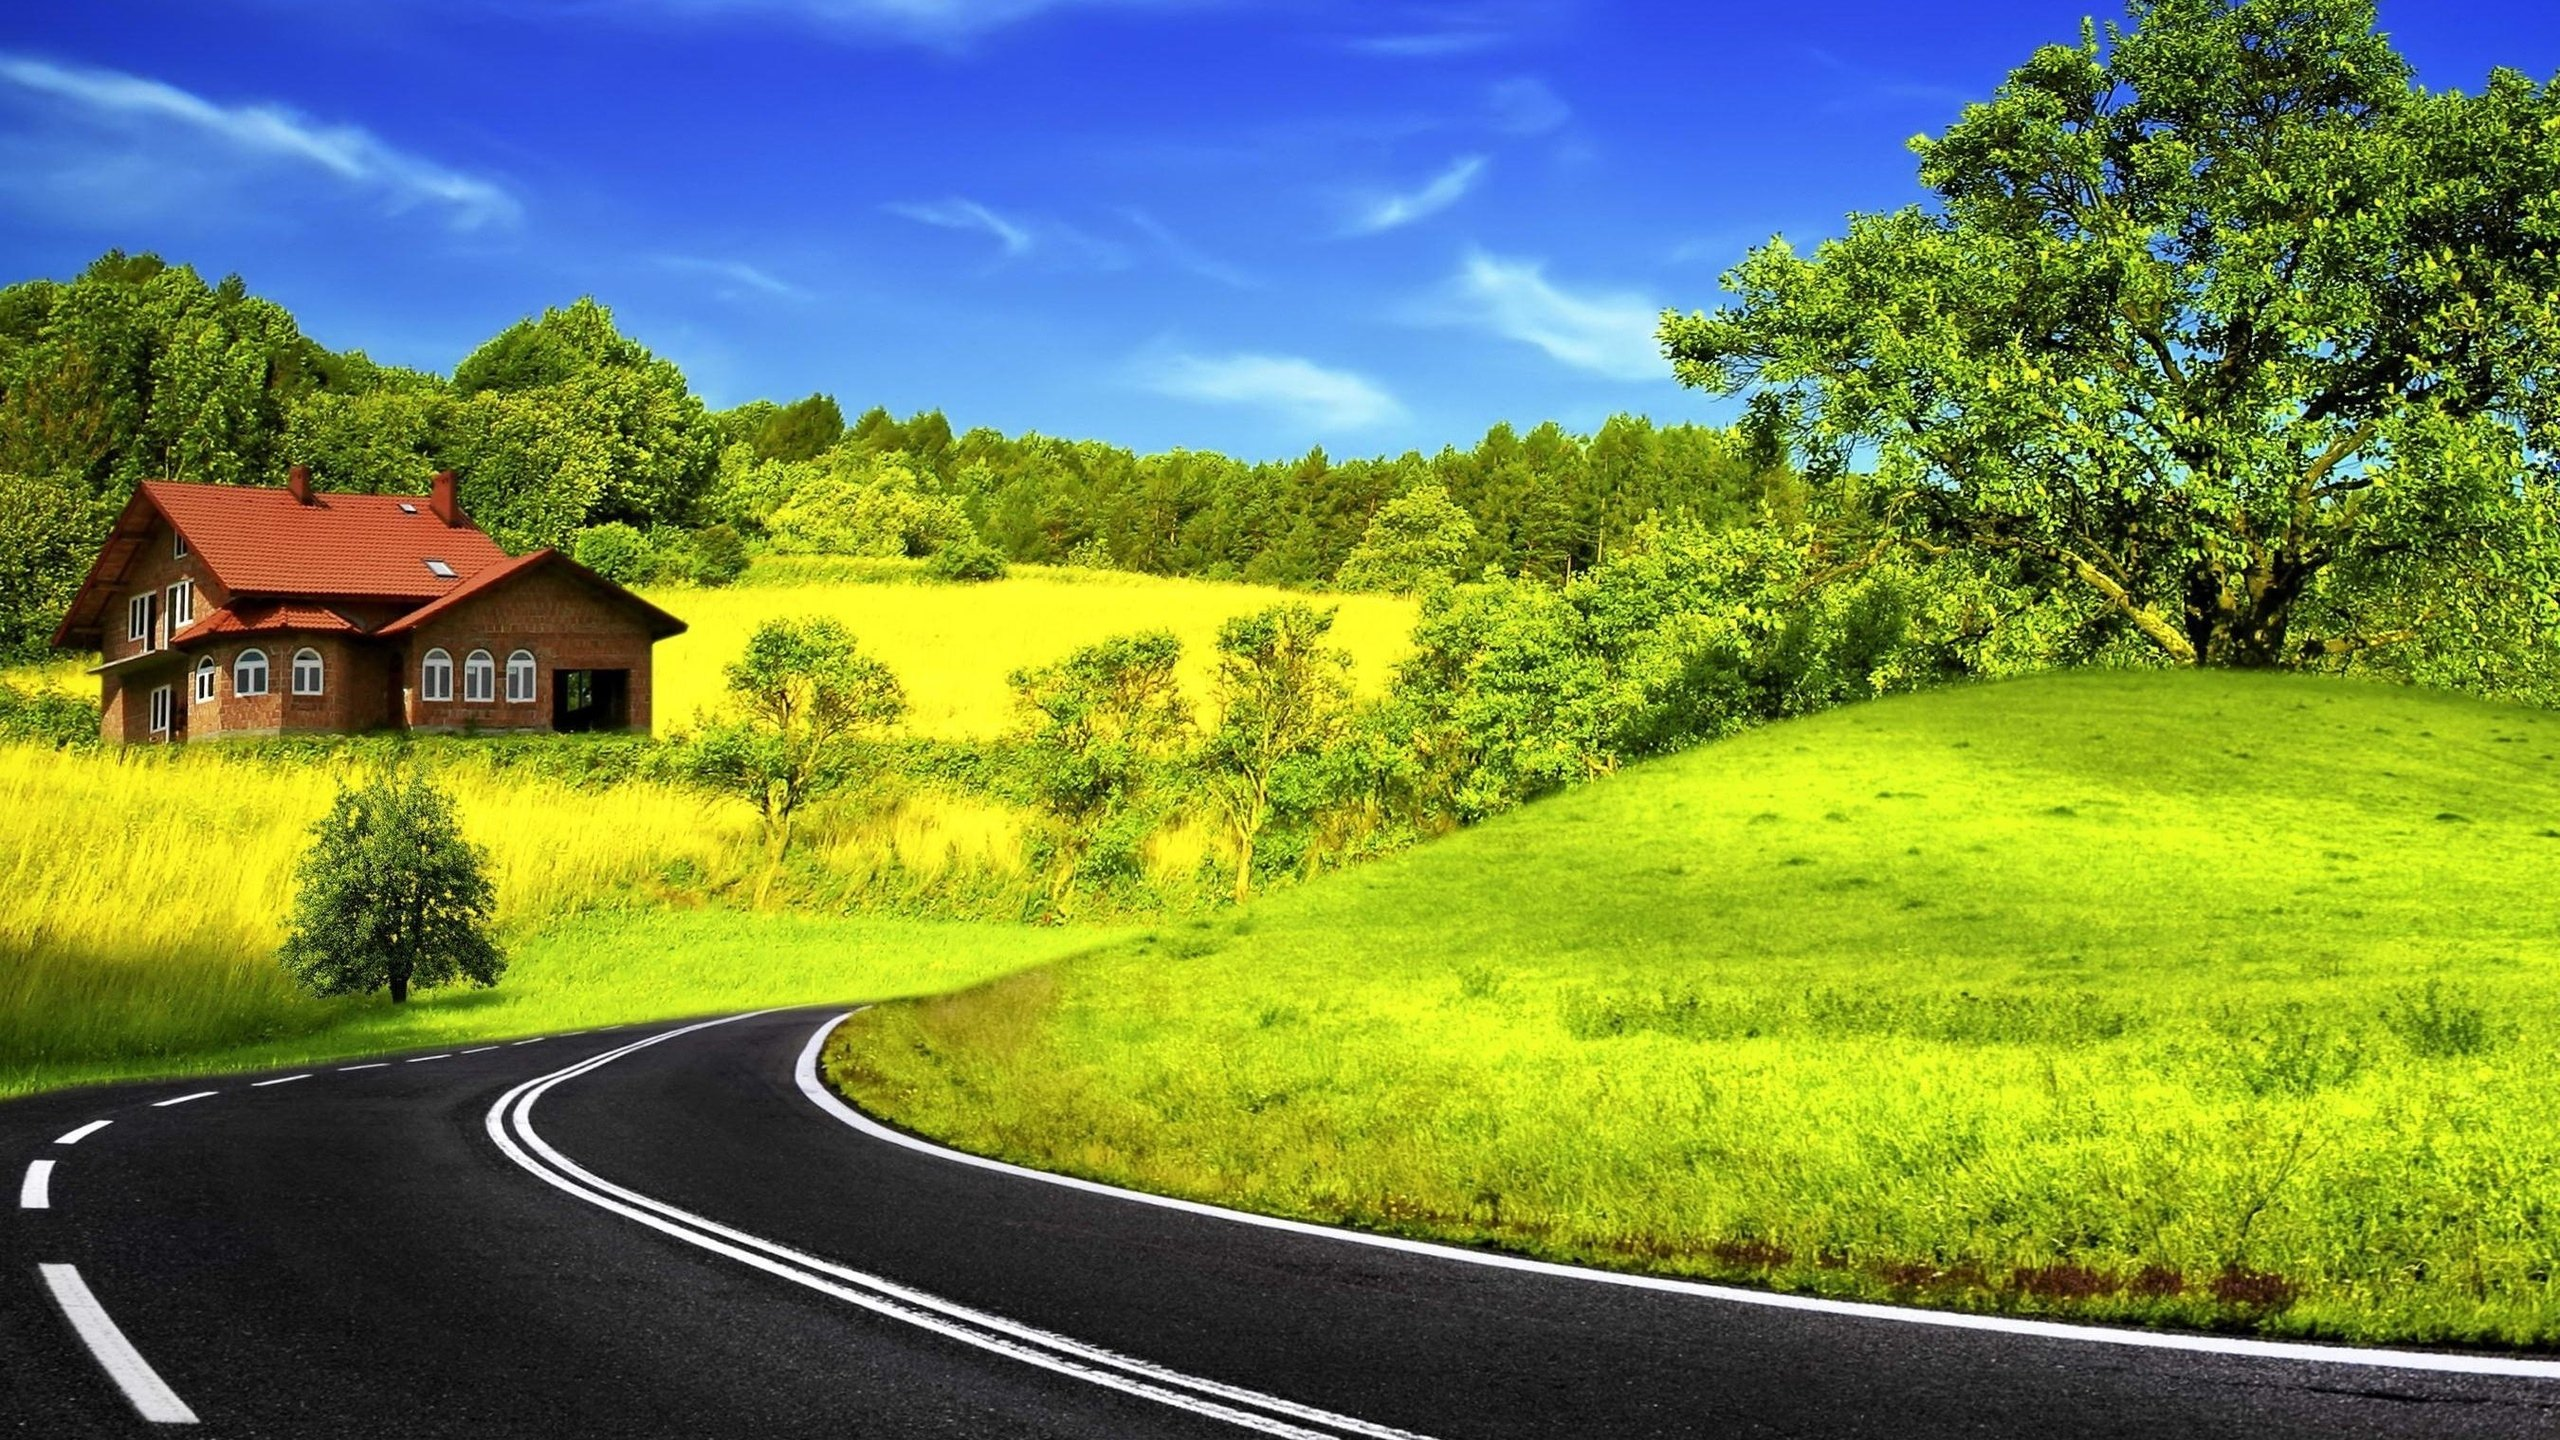 high resolution road hd 2560x1440 wallpaper id:491098 for desktop